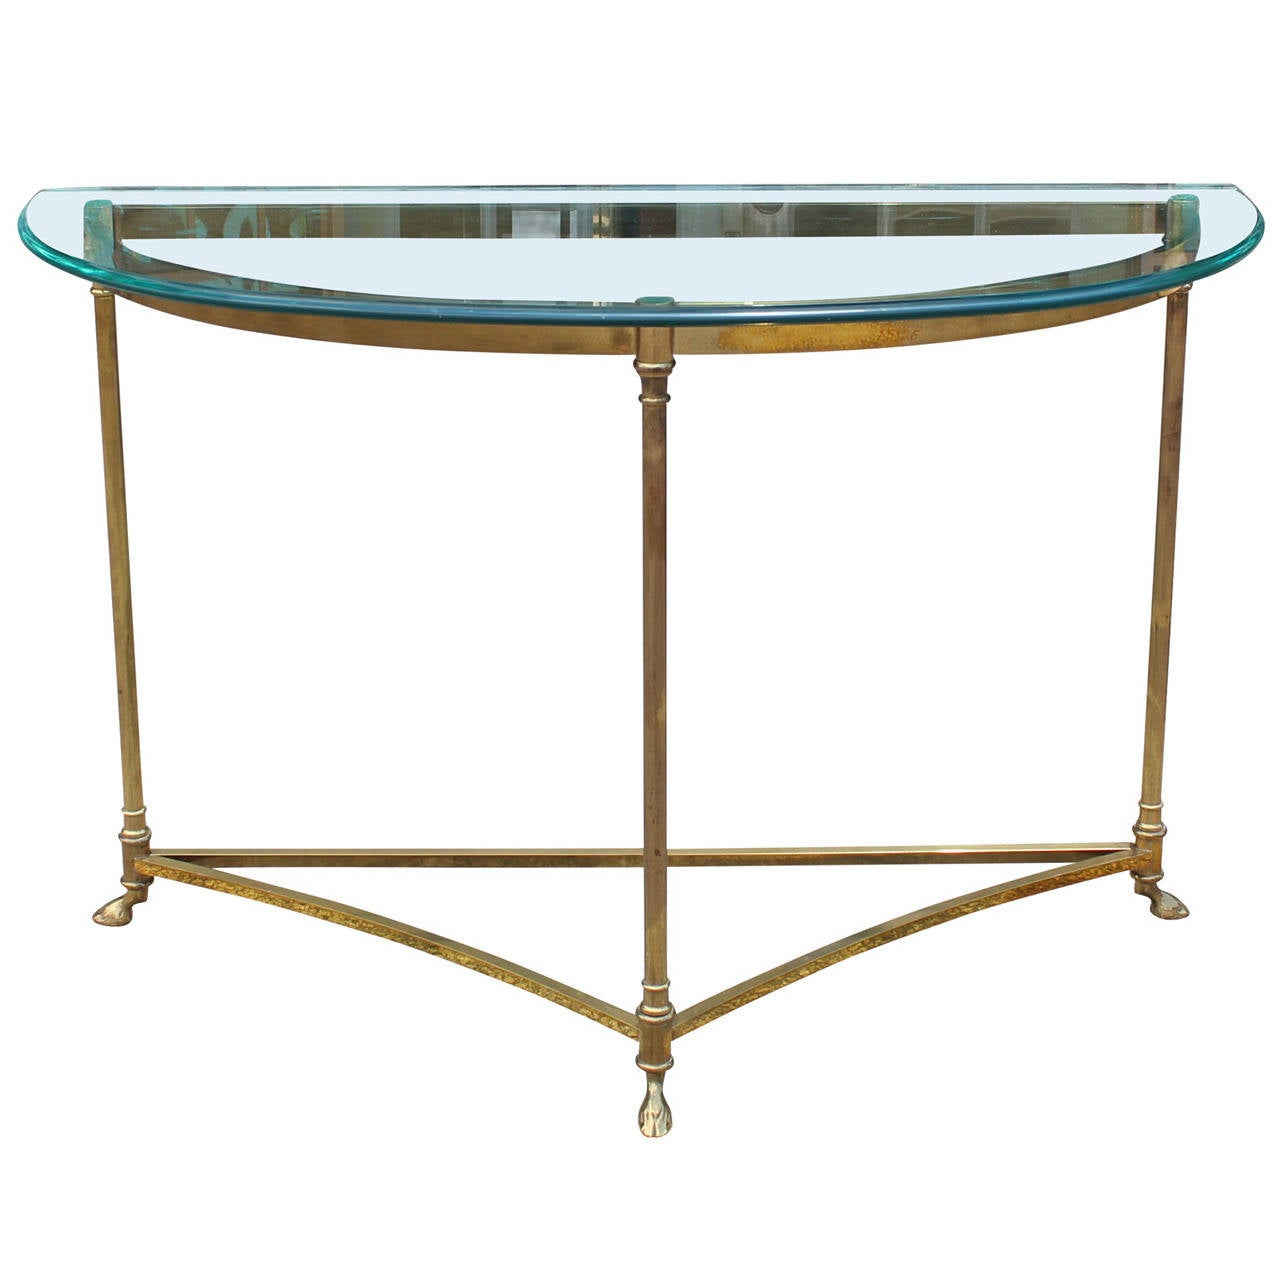 hollywood regency brass and glass demilune console table. Black Bedroom Furniture Sets. Home Design Ideas